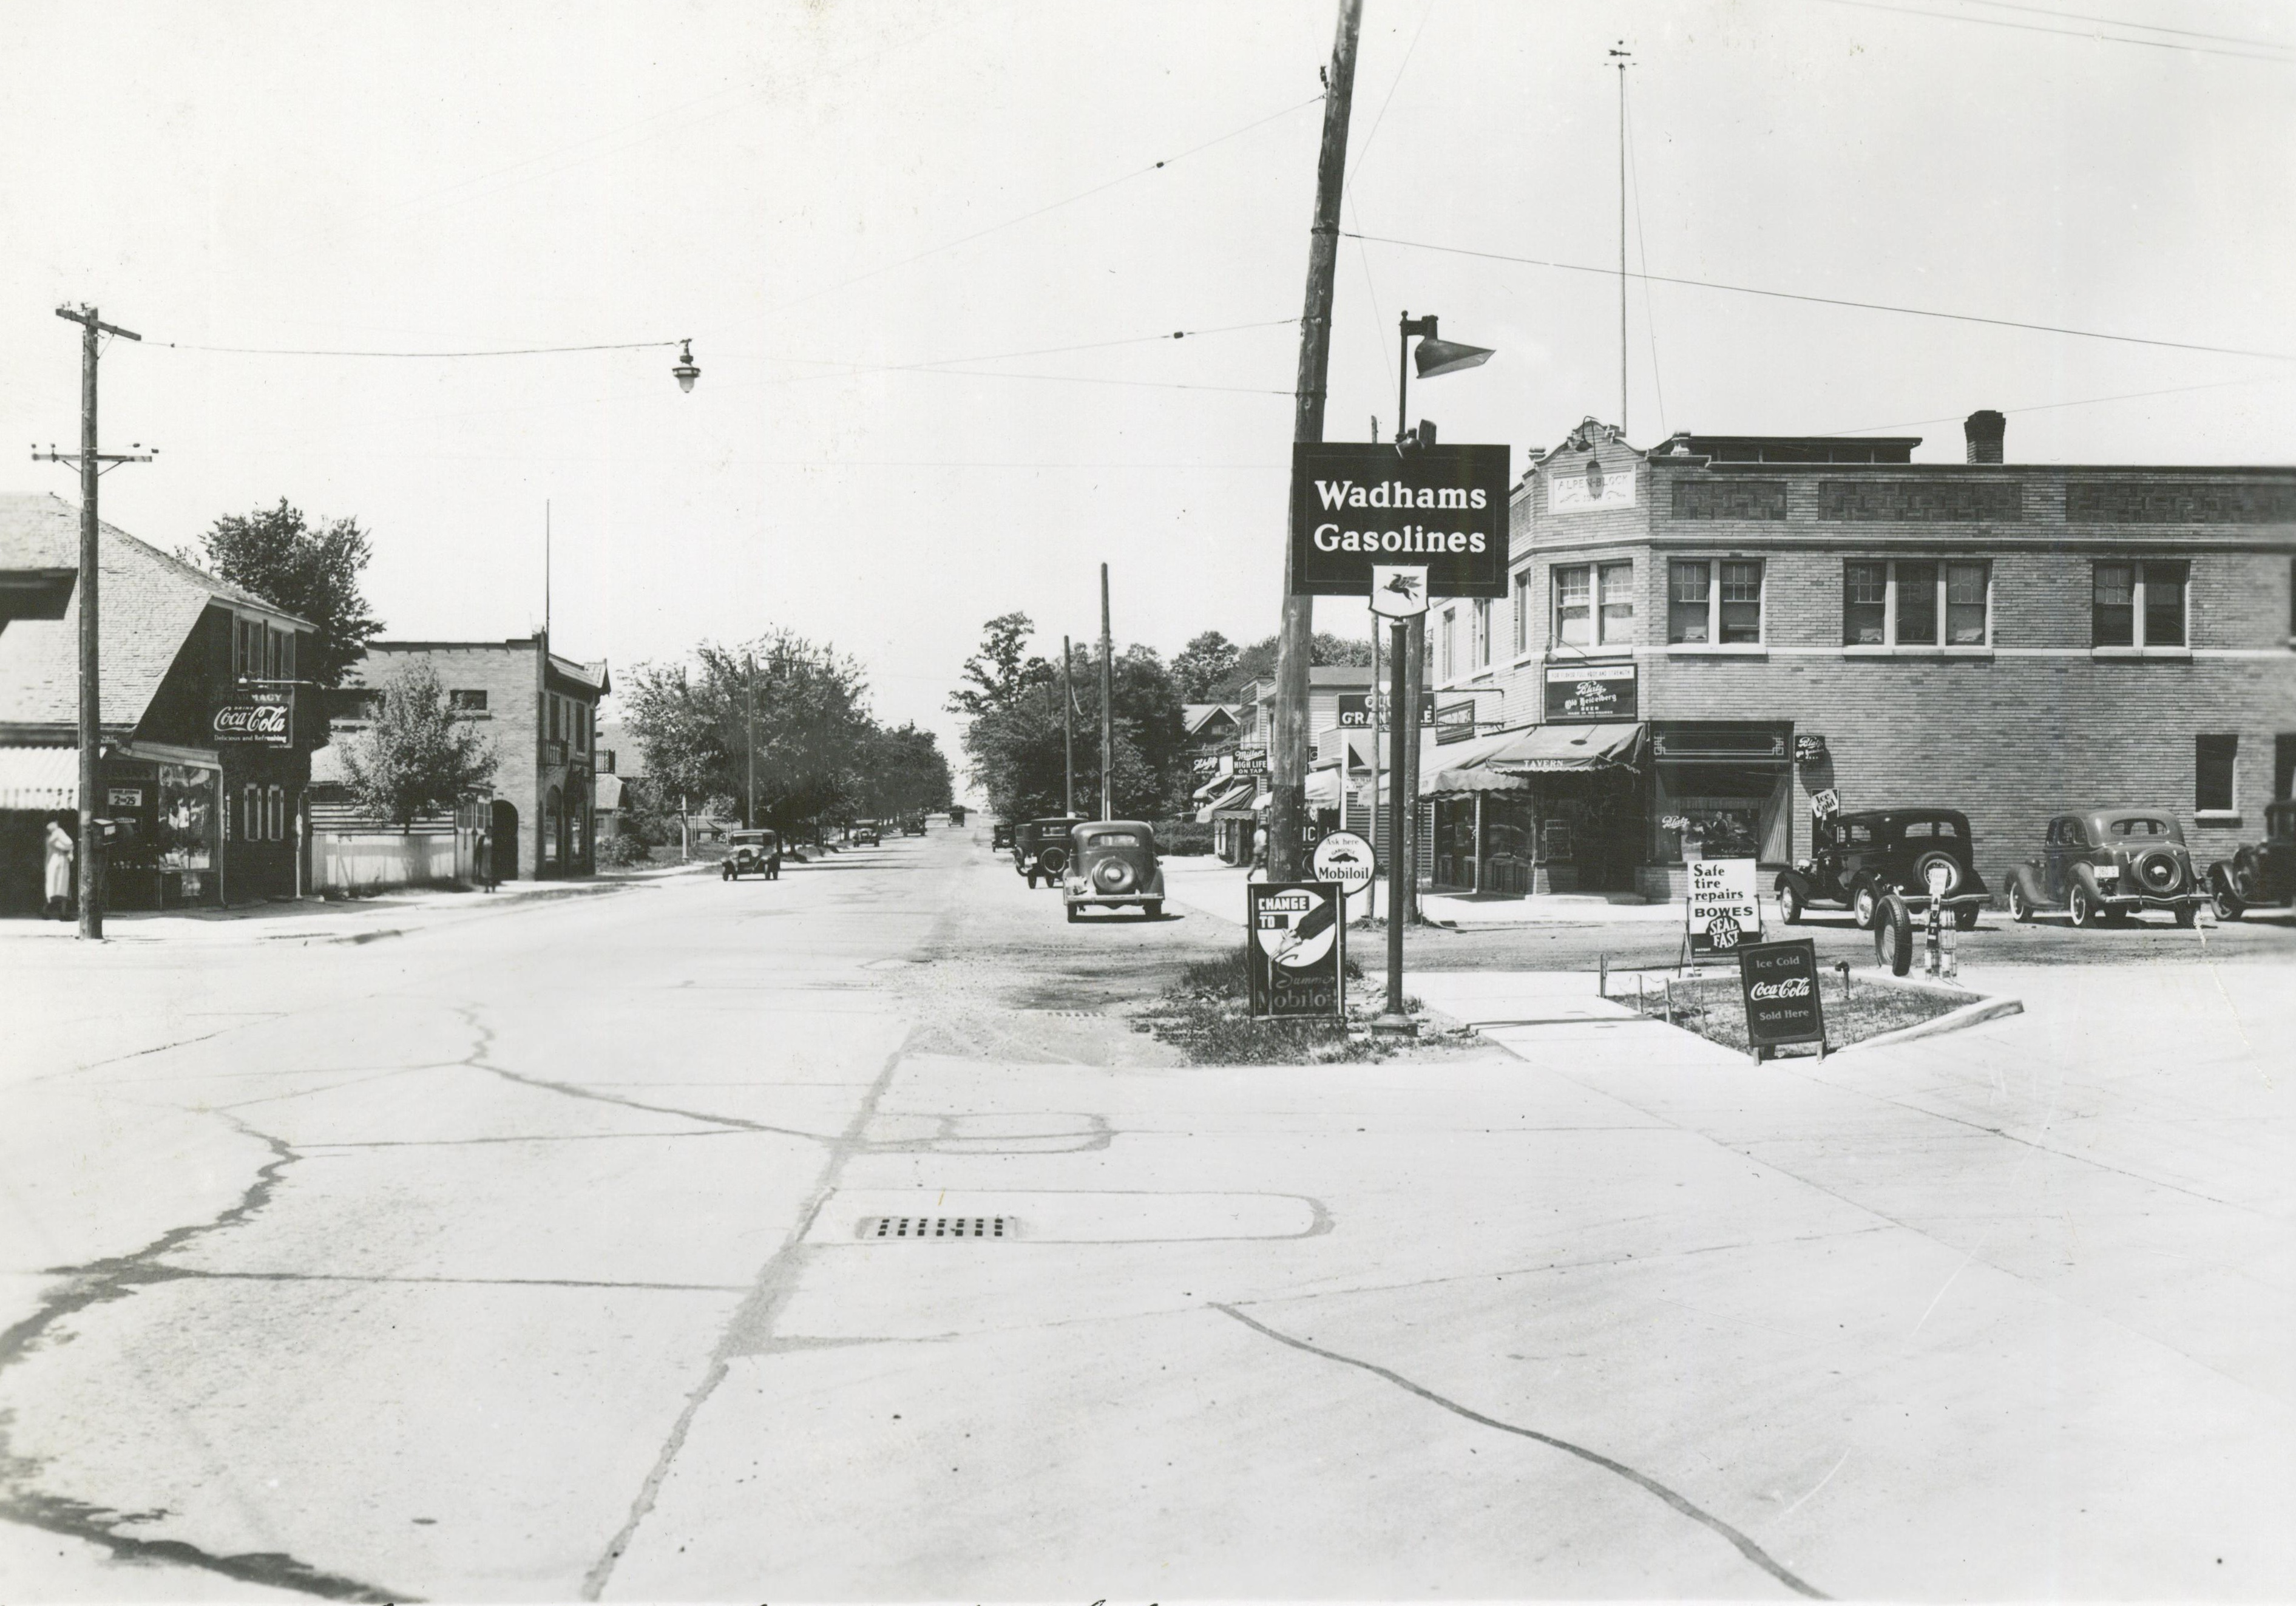 <table class=&quot;lightbox&quot;><tr><td colspan=2 class=&quot;lightbox-title&quot;>Thurston Woods</td></tr><tr><td colspan=2 class=&quot;lightbox-caption&quot;>The intersection of N. 35th Street and Silver Spring Avenue, as it appeared in 1940.</td></tr><tr><td colspan=2 class=&quot;lightbox-spacer&quot;></td></tr><tr class=&quot;lightbox-detail&quot;><td class=&quot;cell-title&quot;>Source: </td><td class=&quot;cell-value&quot;>From the Historic Photo Collection of the Milwaukee Public Library. Reprinted with permission.<br /><a href=&quot;http://content.mpl.org/cdm/singleitem/collection/HstoricPho/id/7496/rec/46&quot; target=&quot;_blank&quot;>Milwaukee Public Library</a></td></tr><tr class=&quot;filler-row&quot;><td colspan=2>&nbsp;</td></tr></table>